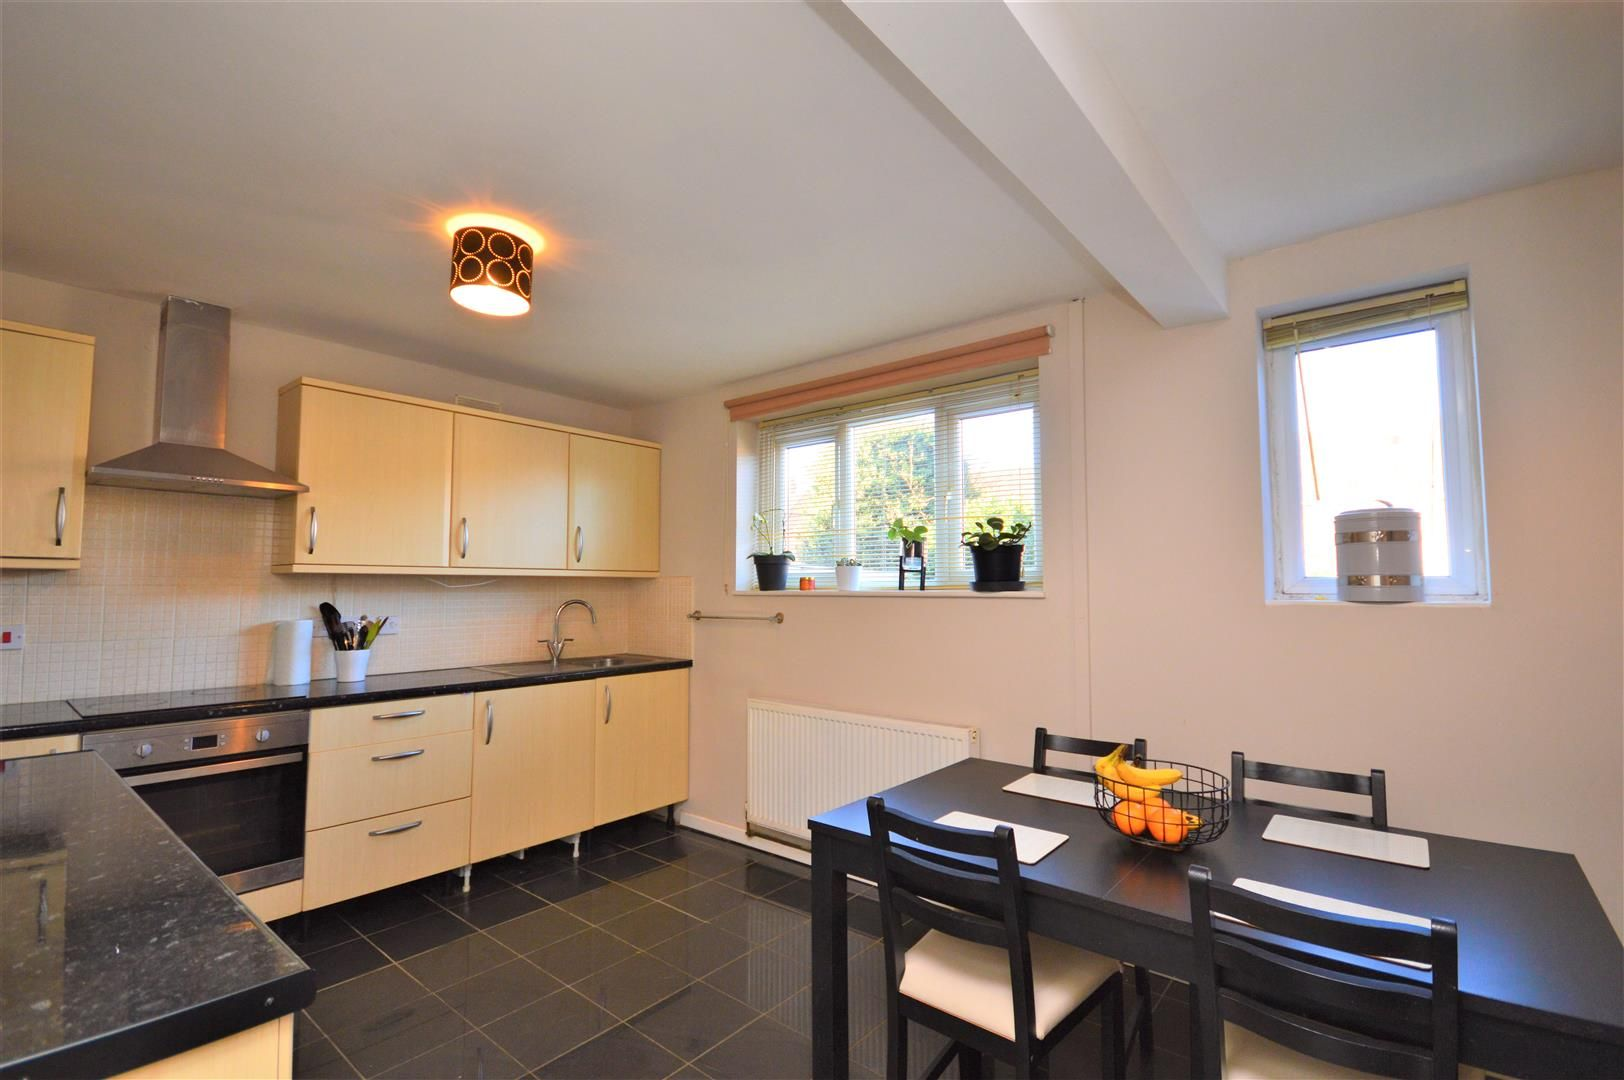 3 bed end-of-terrace for sale in Hereford 7